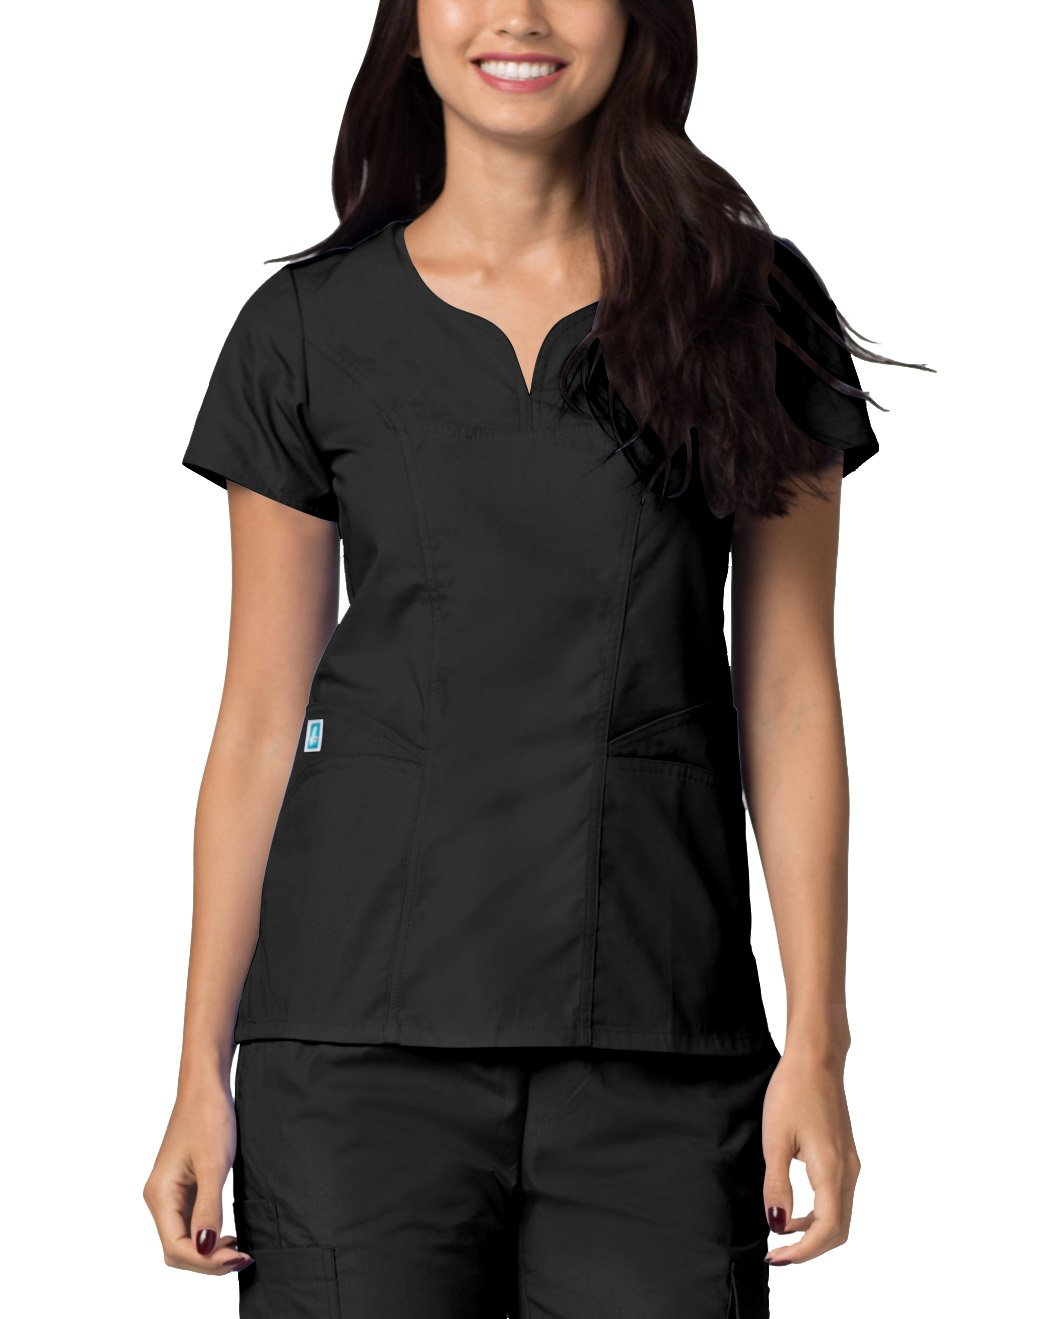 Adar Universal Curved Pocket Glamour Scrub Top - 2632 - Black - S